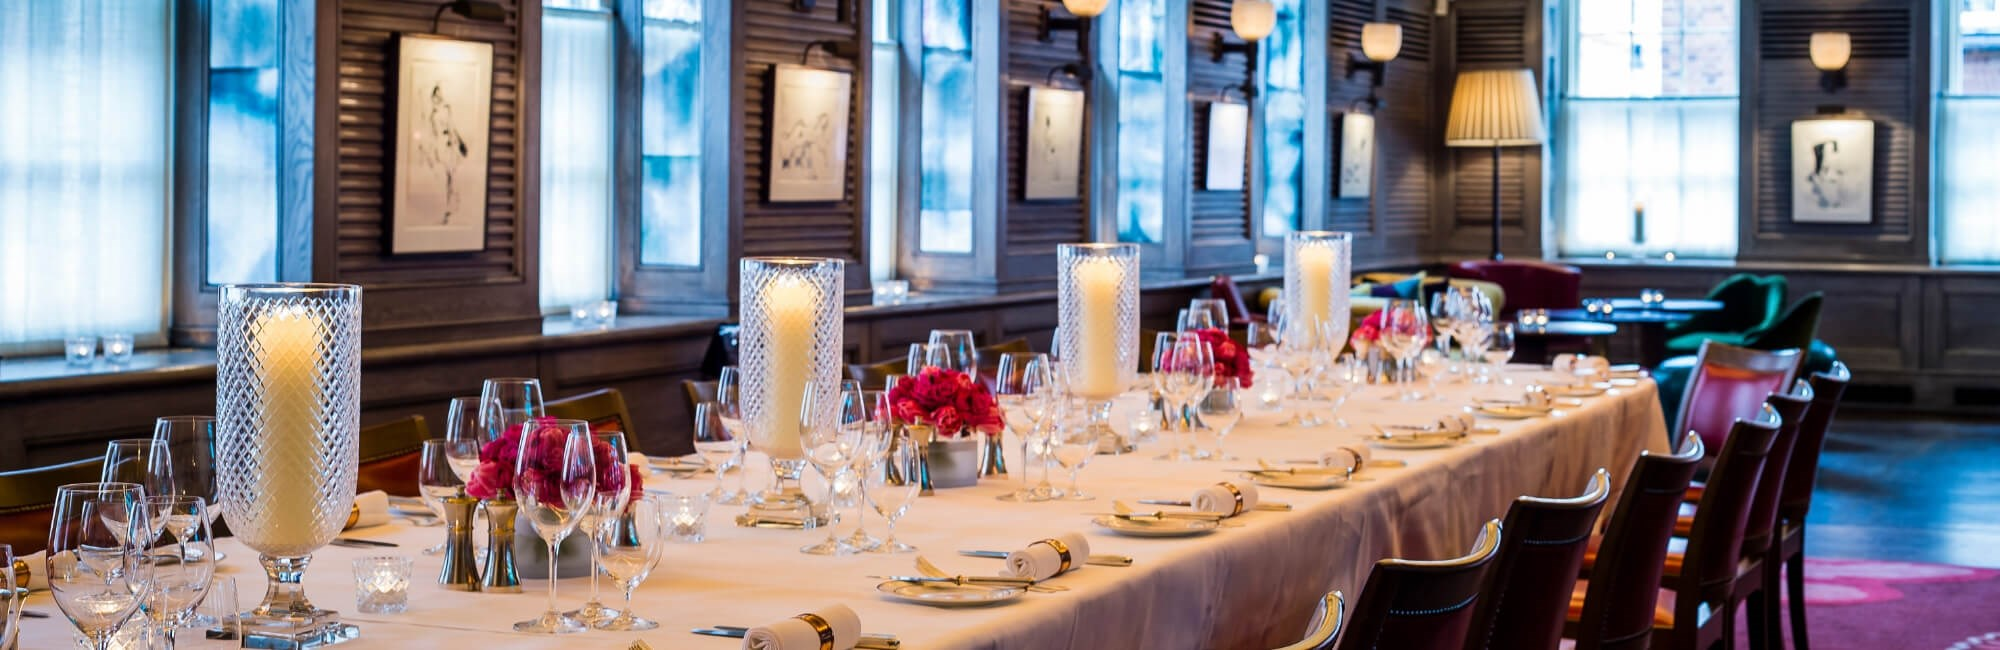 Private Dining Room Available to Hire in Mayfair at 34 Mayfair. The room is suitable for birthday, wedding or anniversary celebrations.